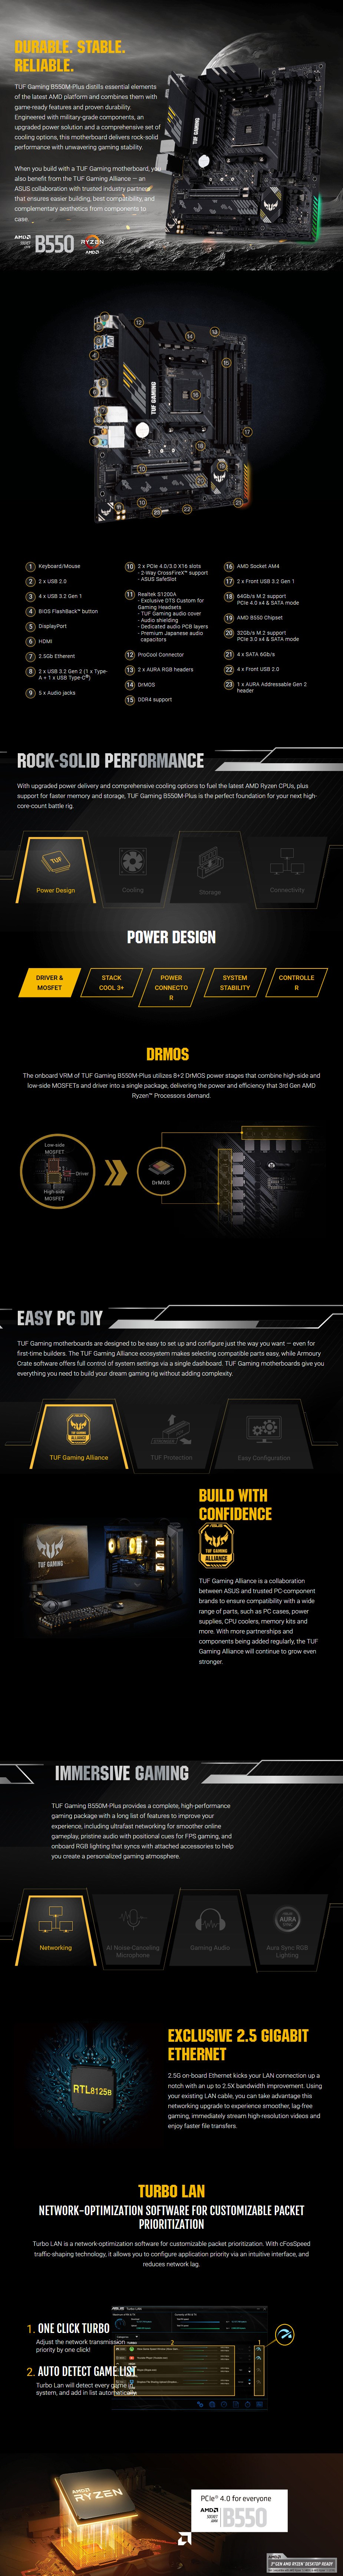 ASUS TUF GAMING B550M-PLUS AM4 Micro-ATX Motherboard - Overview 1